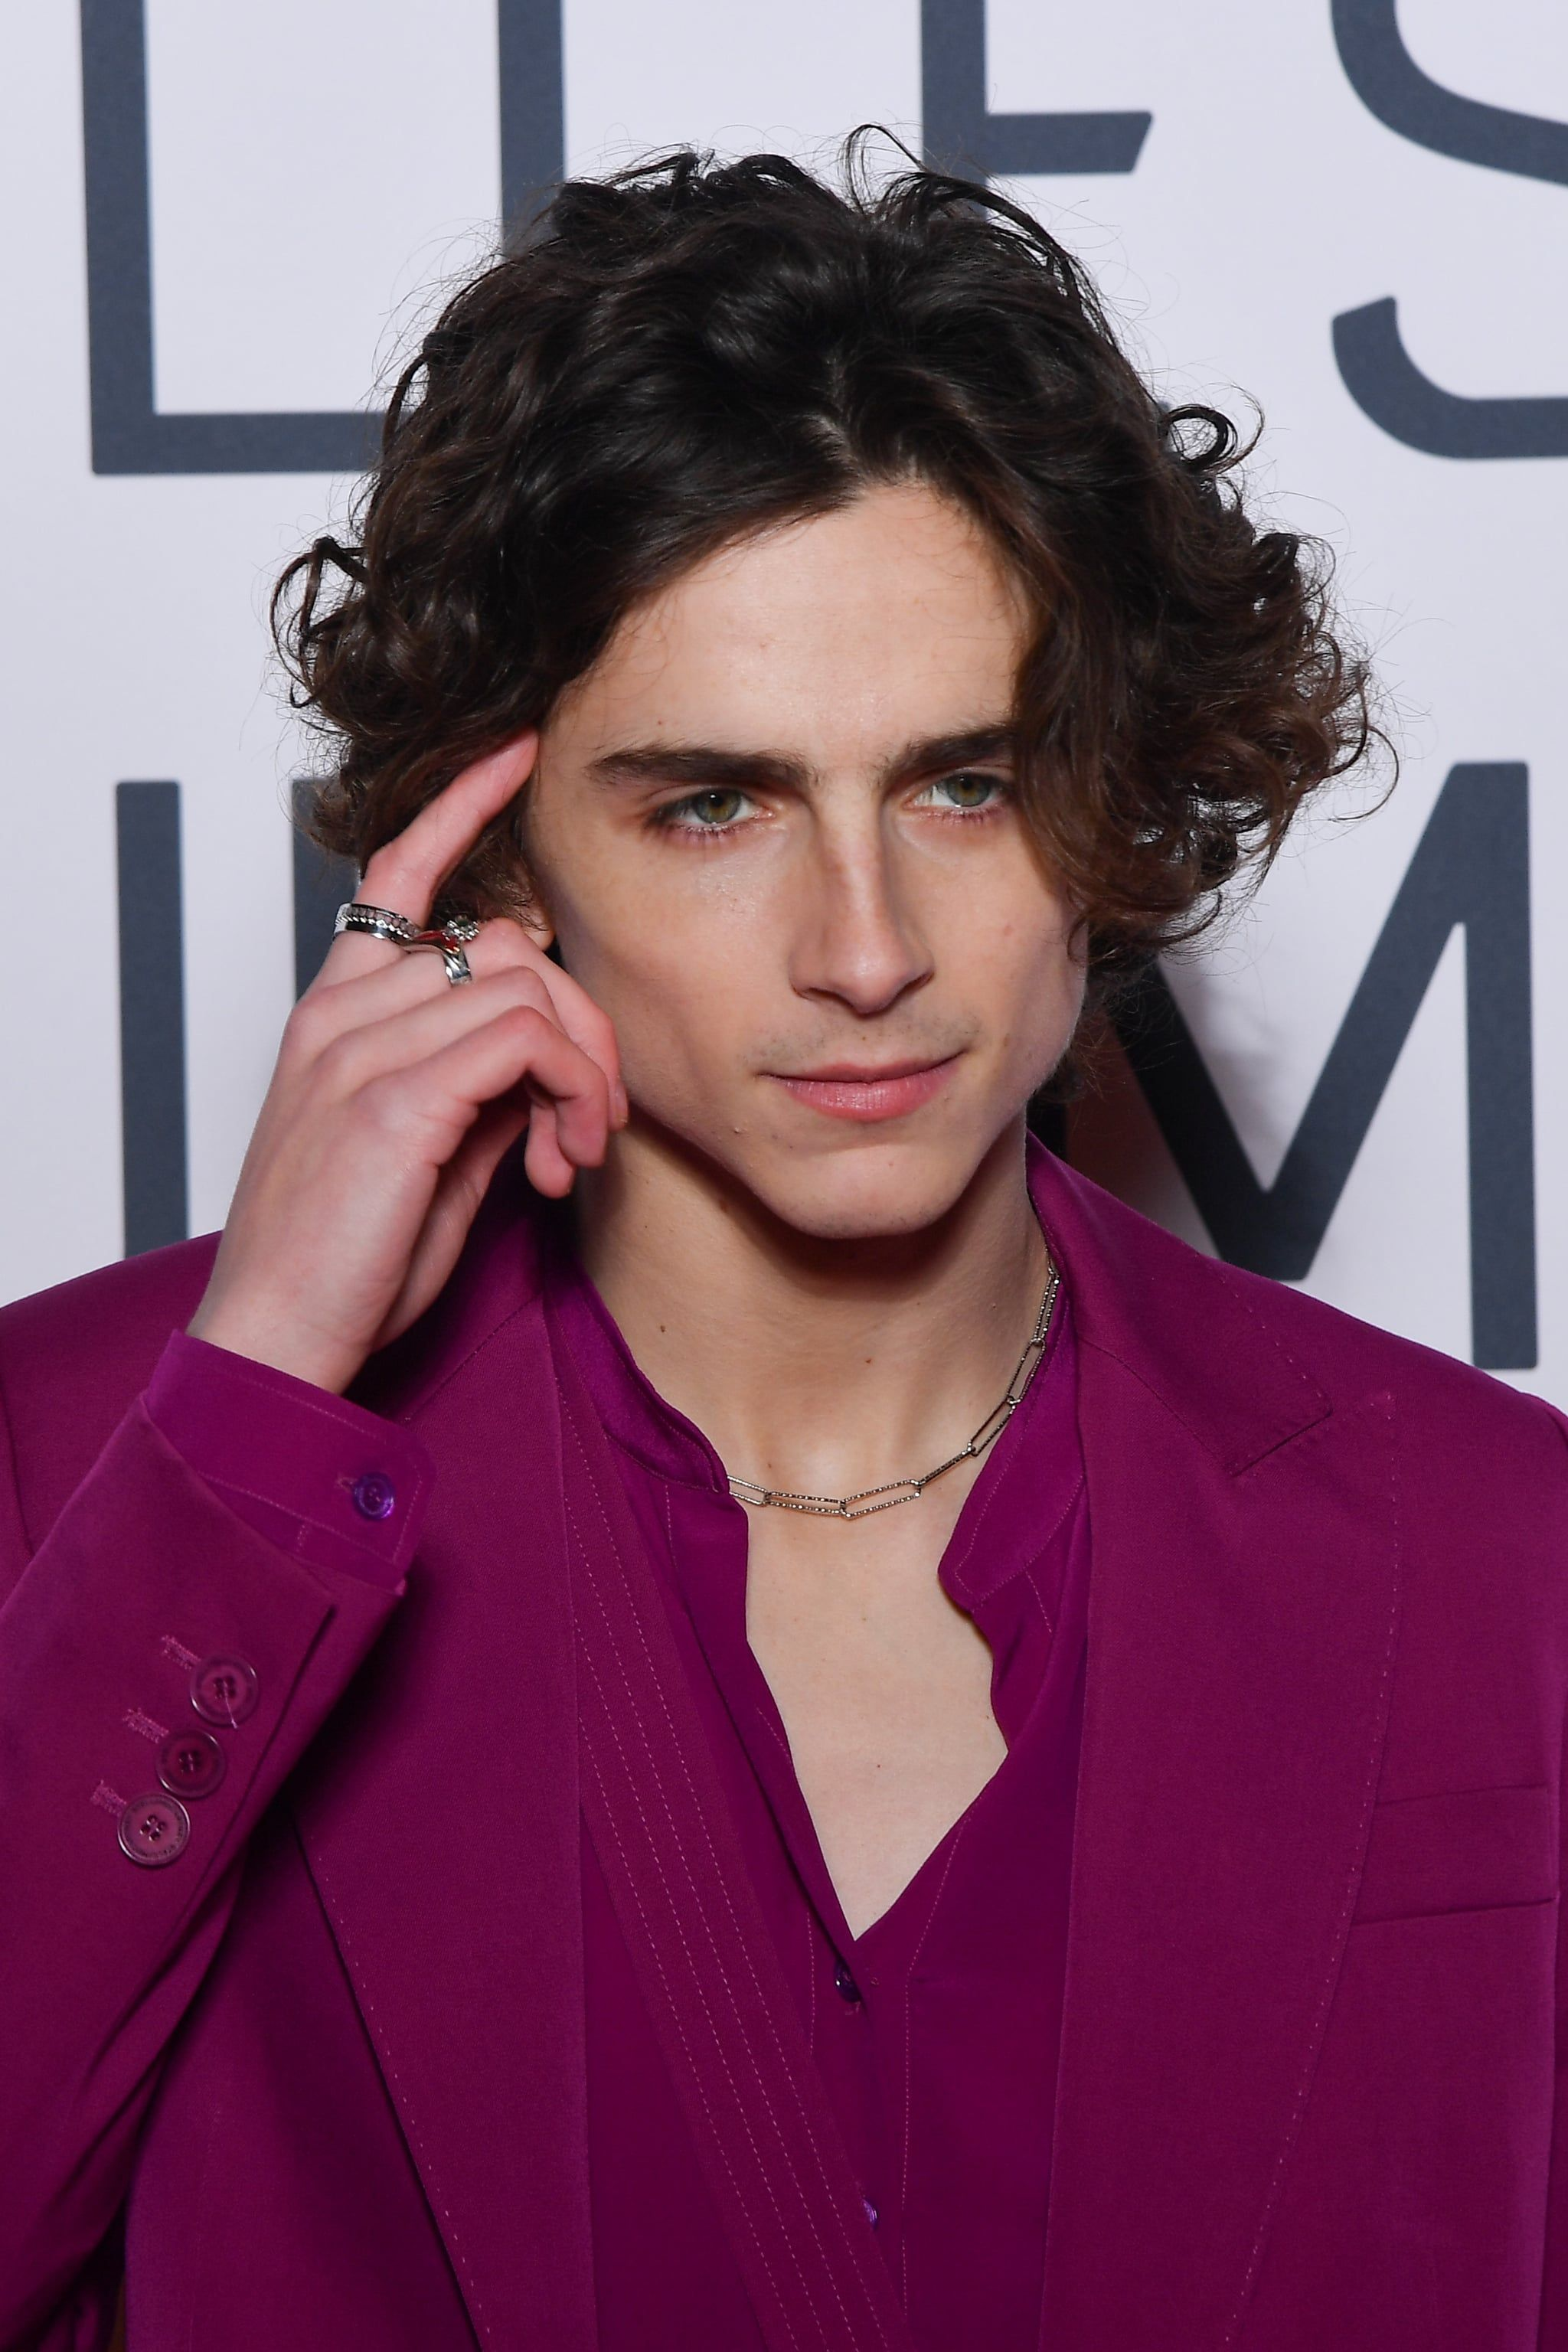 Oh My Timothee Chalamet Rocked A Raspberry Colored Suit At The Premiere Of Little Women Timothee Chalamet Timmy T Pretty Boys